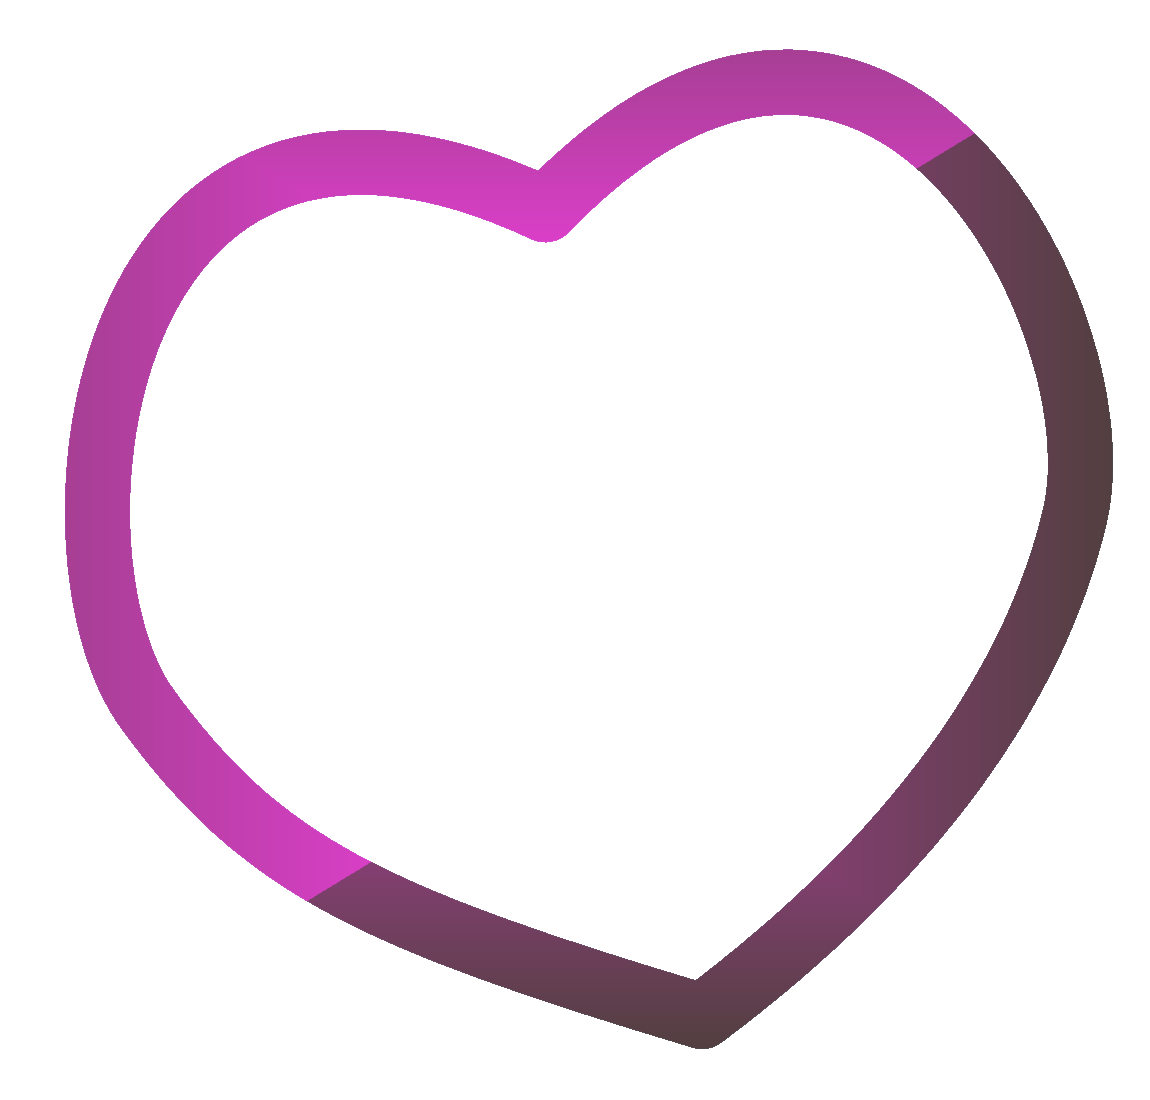 Heart clipart png transparent free stock Frame Heart Transparent PNG Pictures - Free Icons and PNG Backgrounds free stock